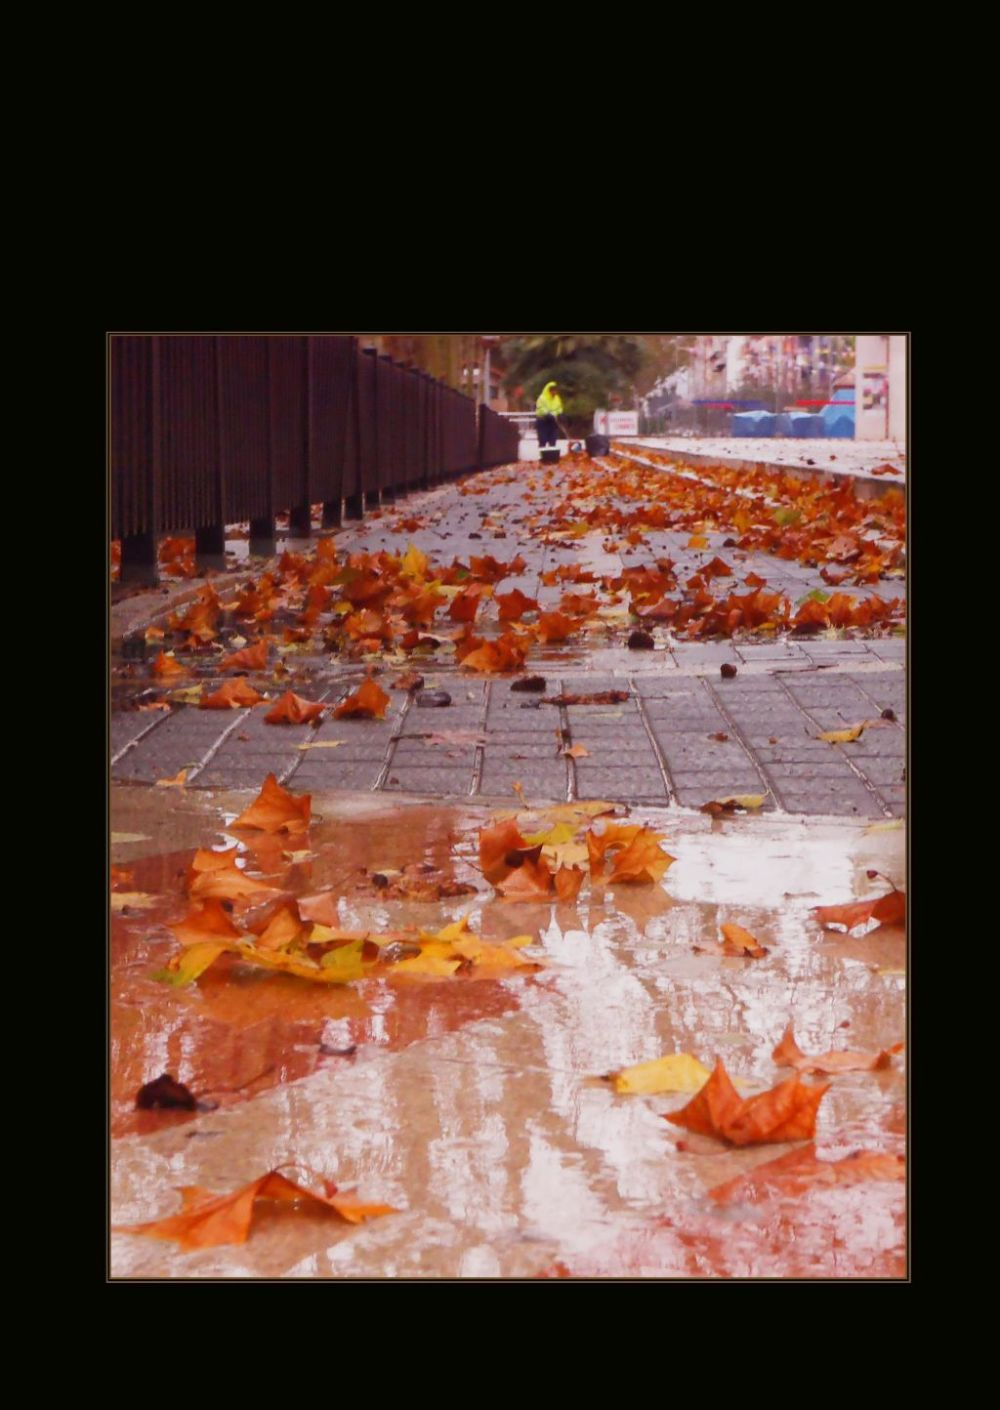 Wet Square Covered In Fallen Leaves